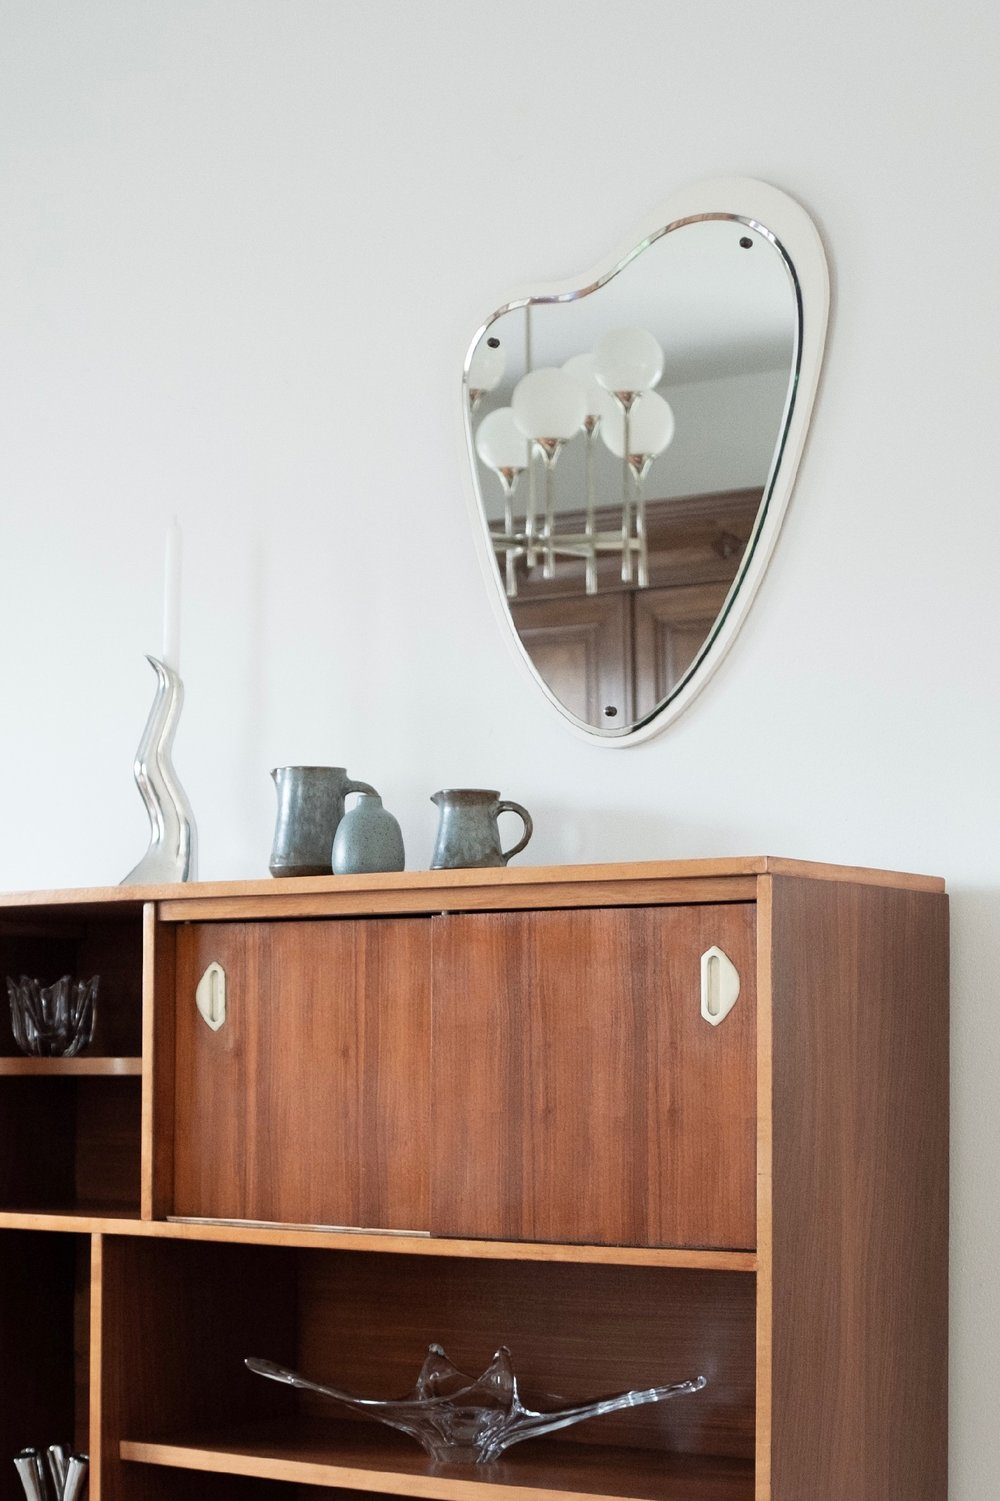 Anna Efverlund candleholder and blue ceramic vases on restored wooden sideboard in with organic shape mirror.